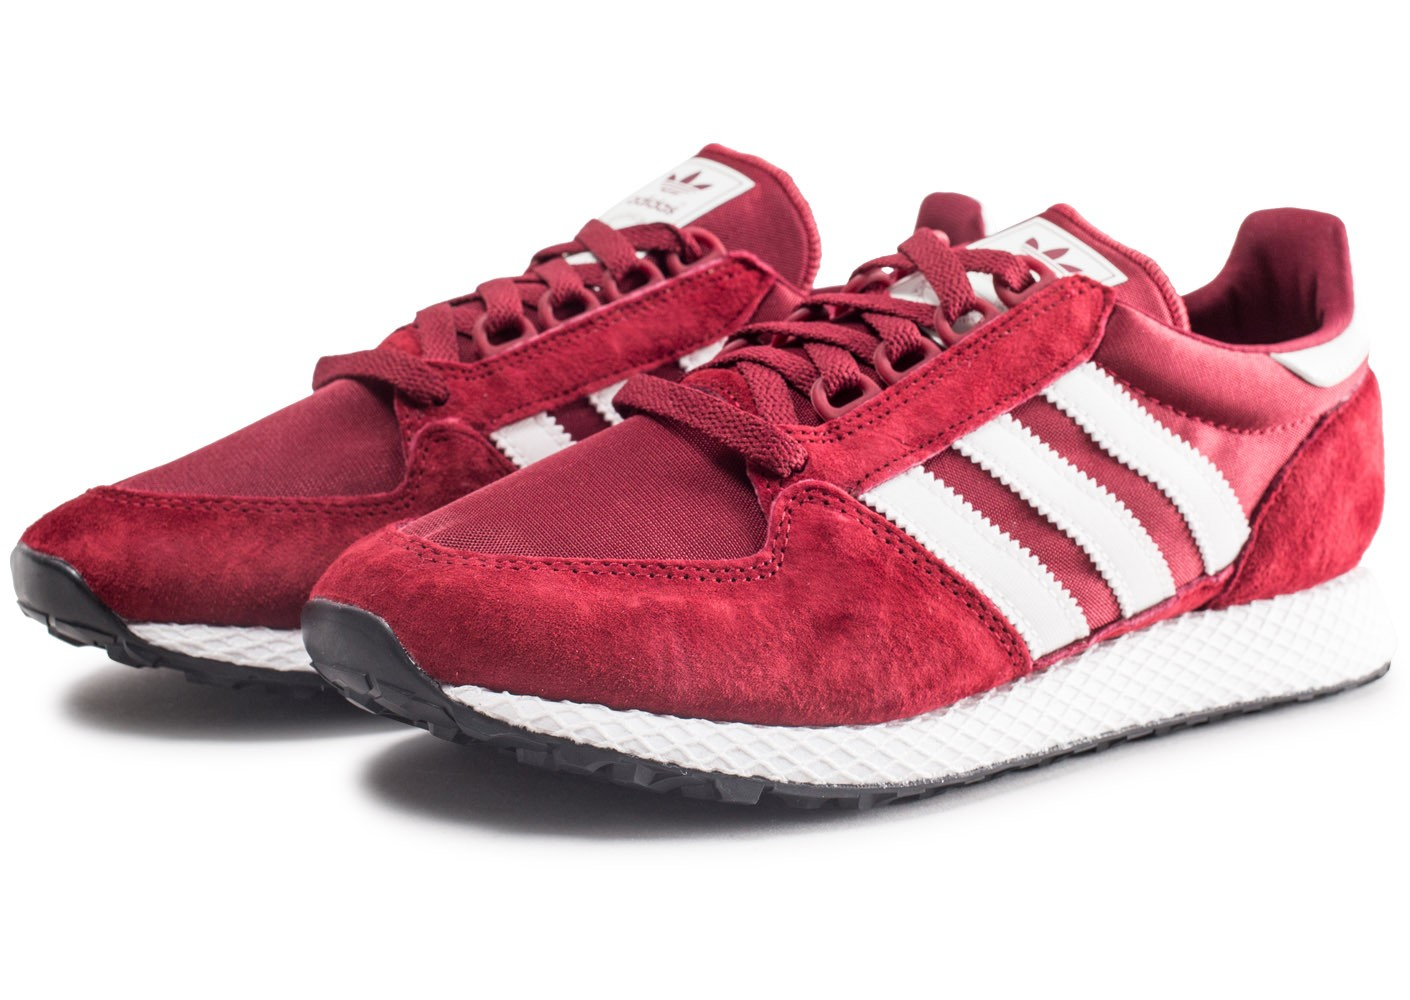 ff21a4ef0c adidas Forest Grove bordeaux - Chaussures Baskets homme - Chausport